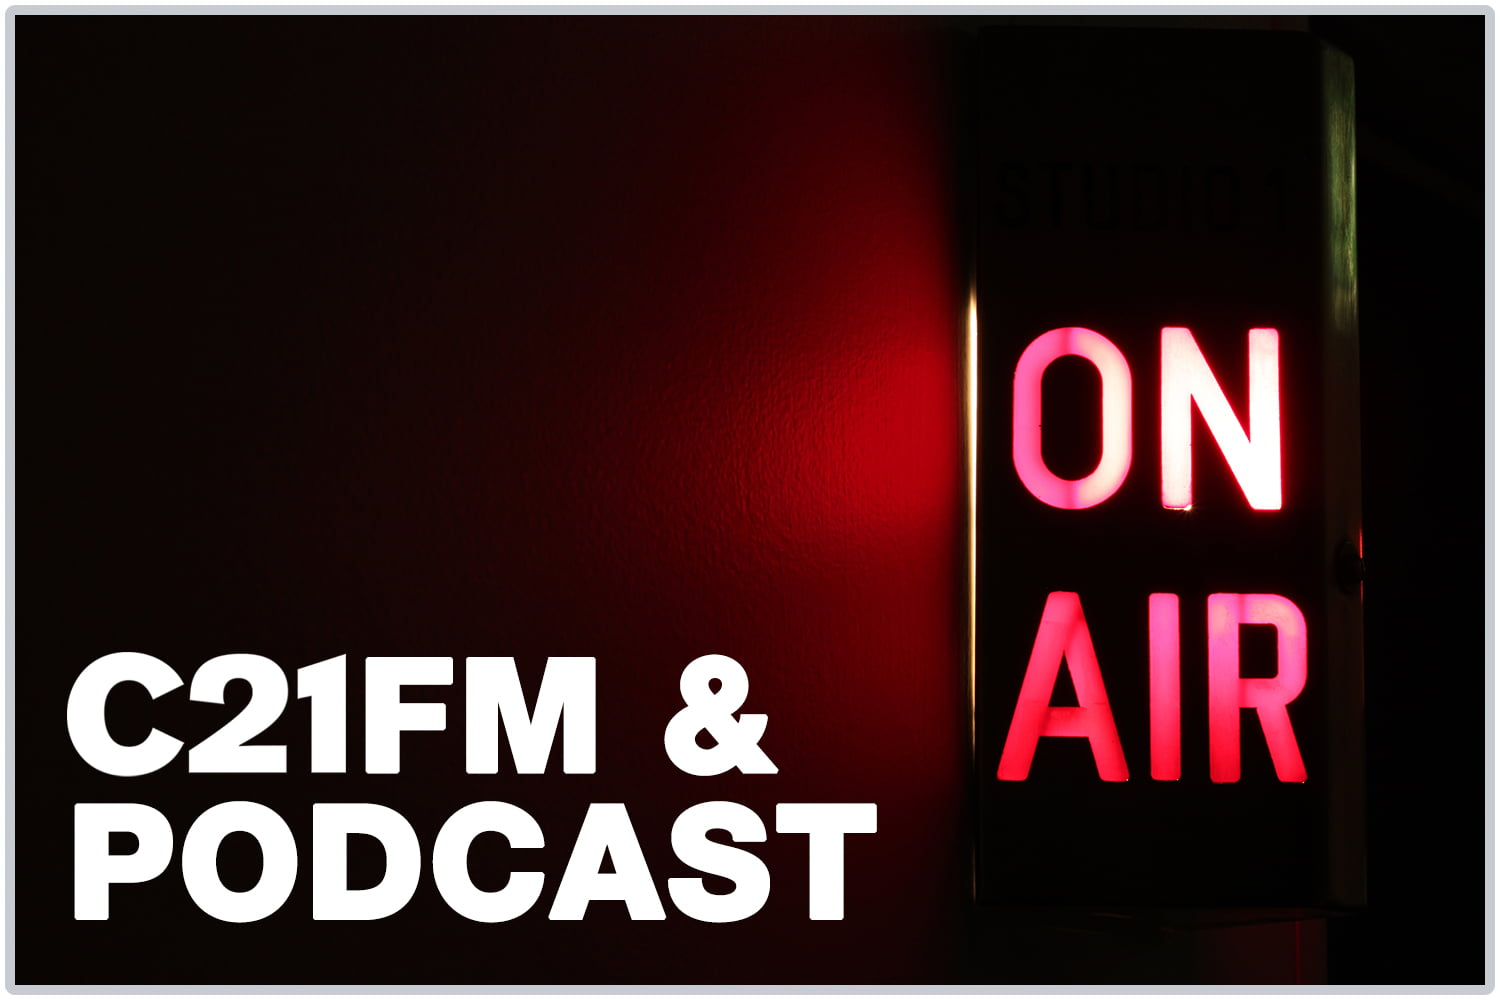 FM and Podcast